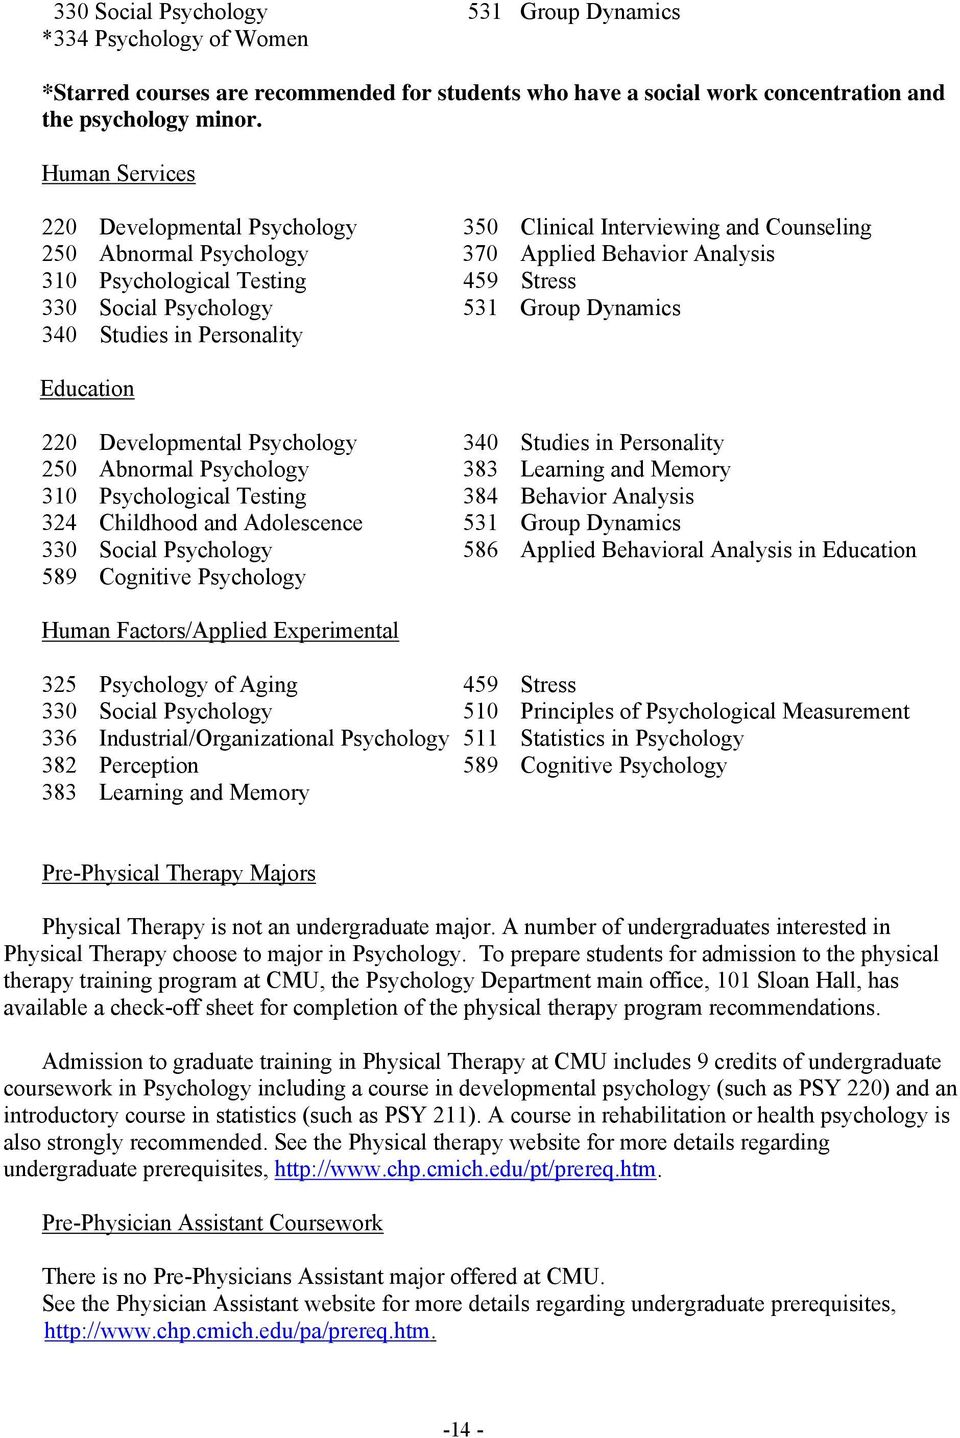 531 Group Dynamics 340 Studies in Personality Education 220 Developmental Psychology 340 Studies in Personality 250 Abnormal Psychology 383 Learning and Memory 310 Psychological Testing 384 Behavior